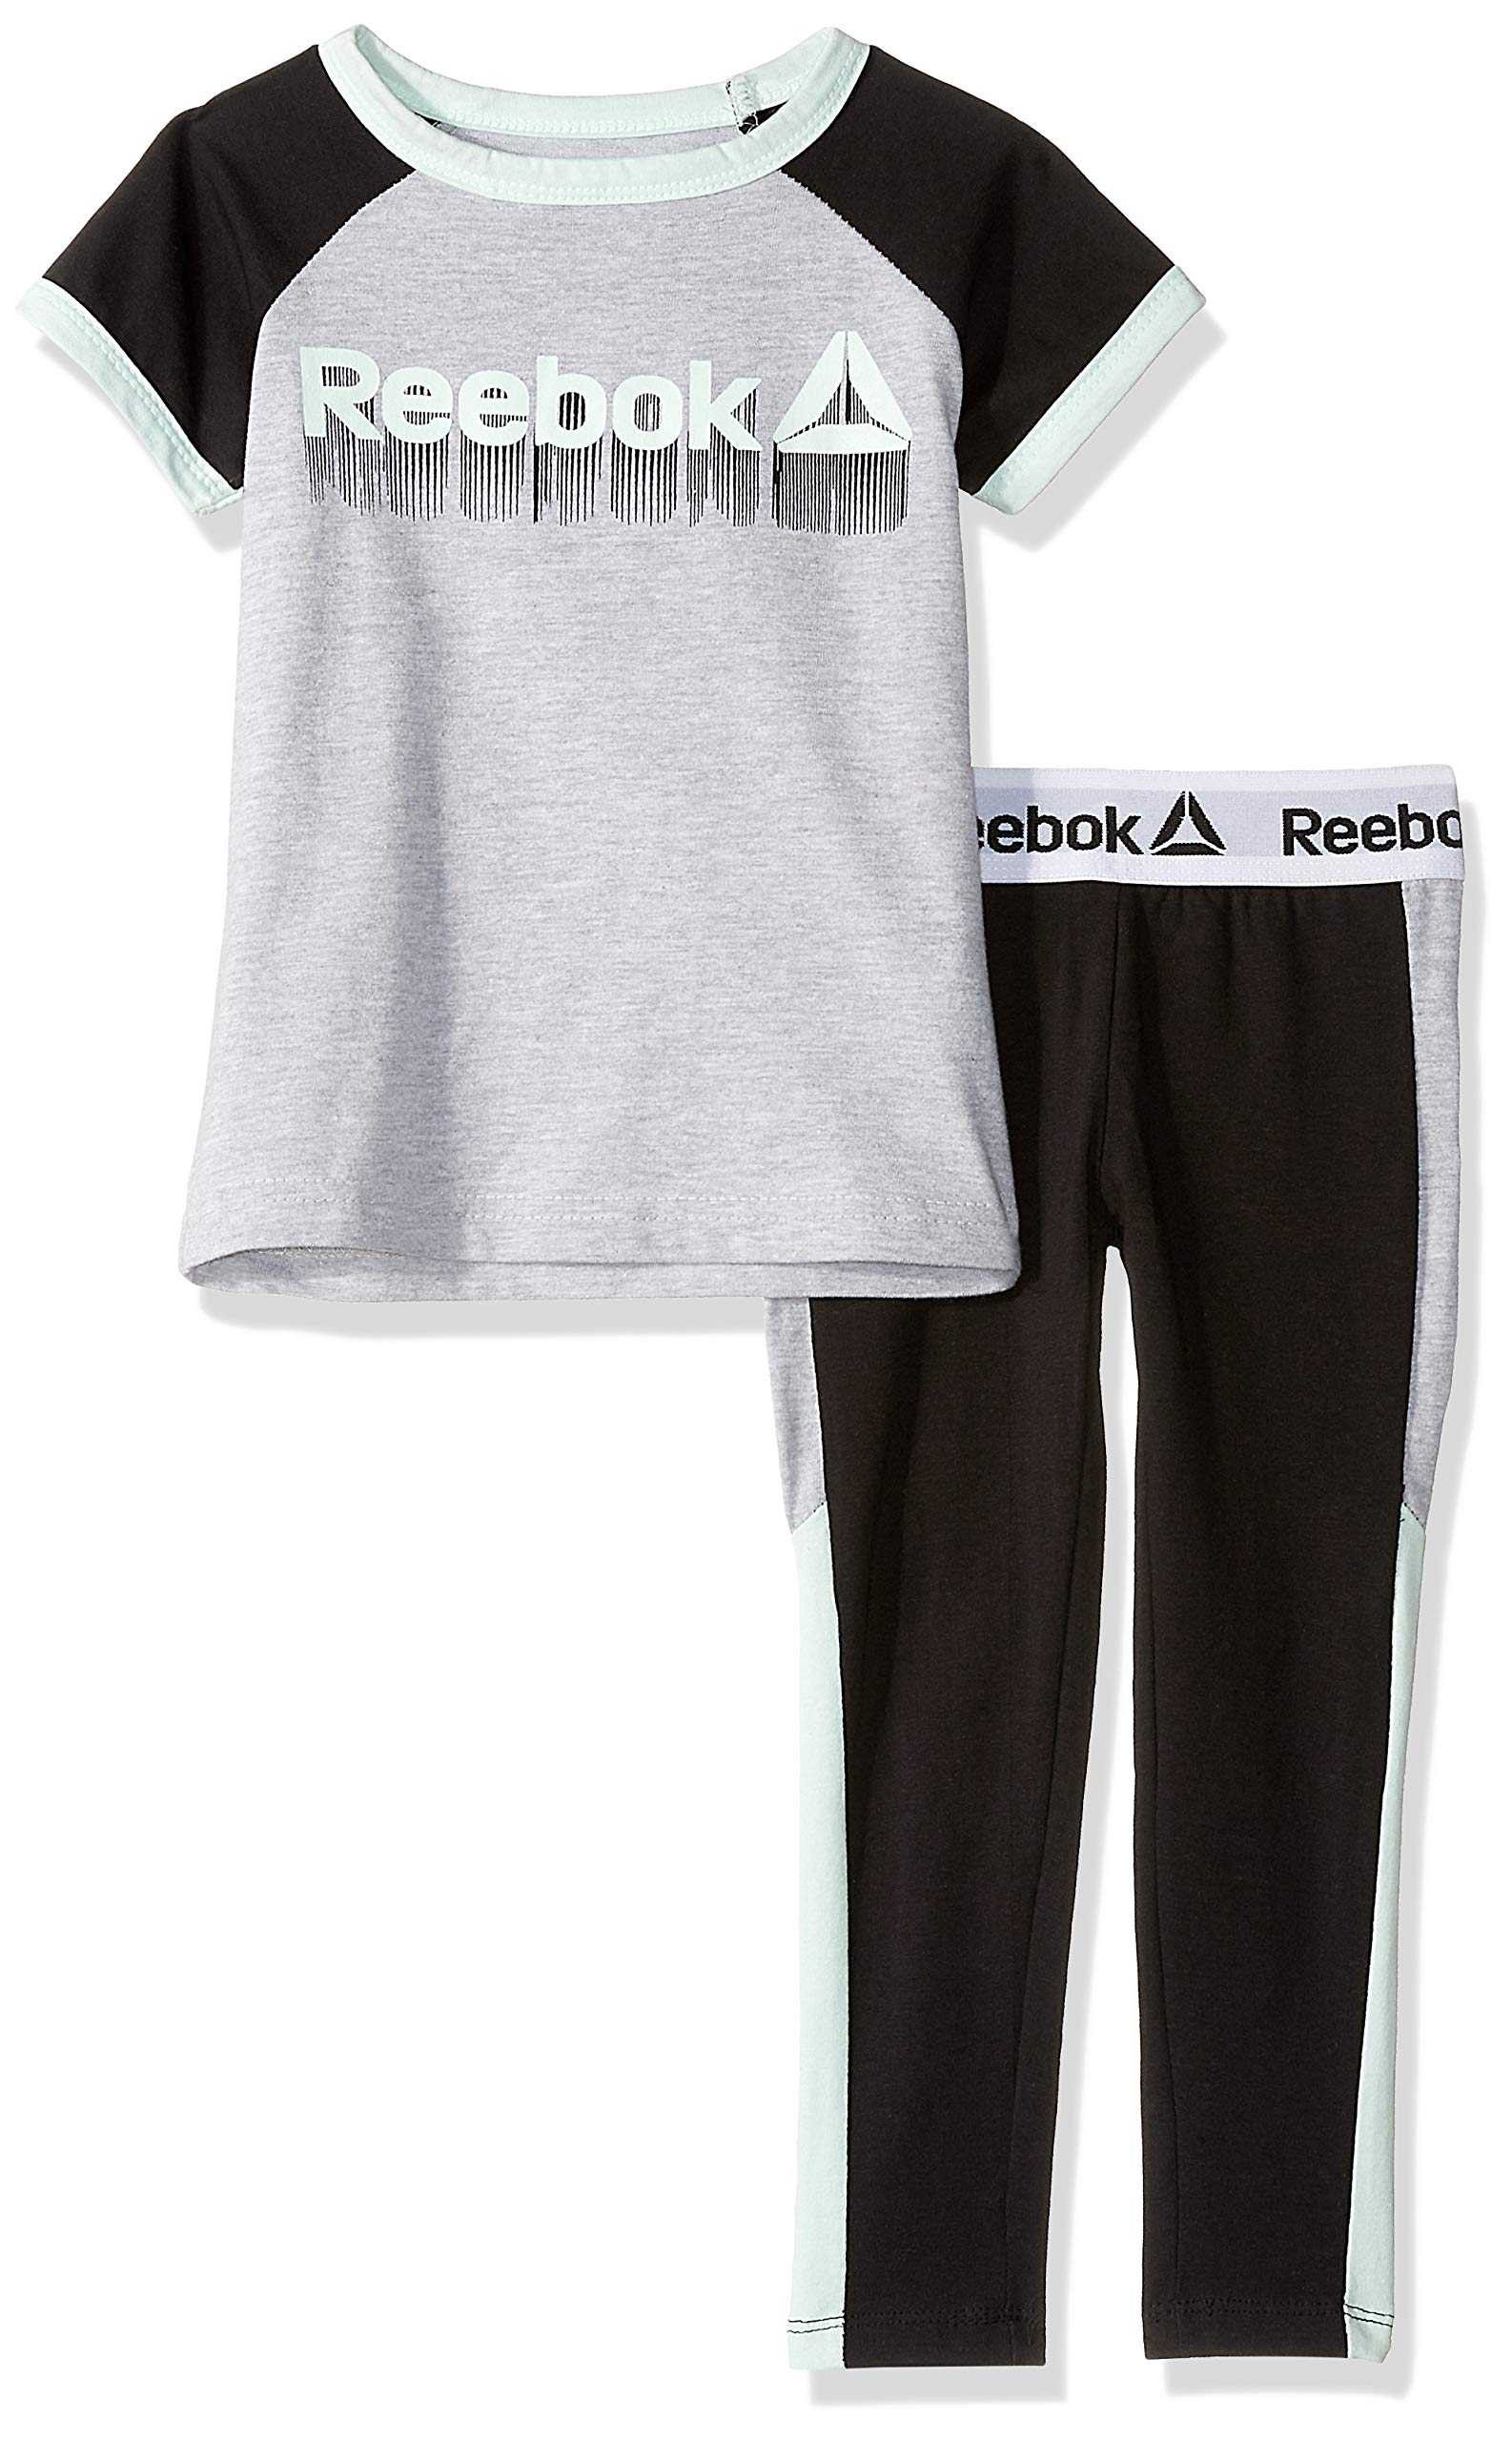 Reebok Girls' Short Sleeve Printed T-Shirt and Pull-on Legging Set